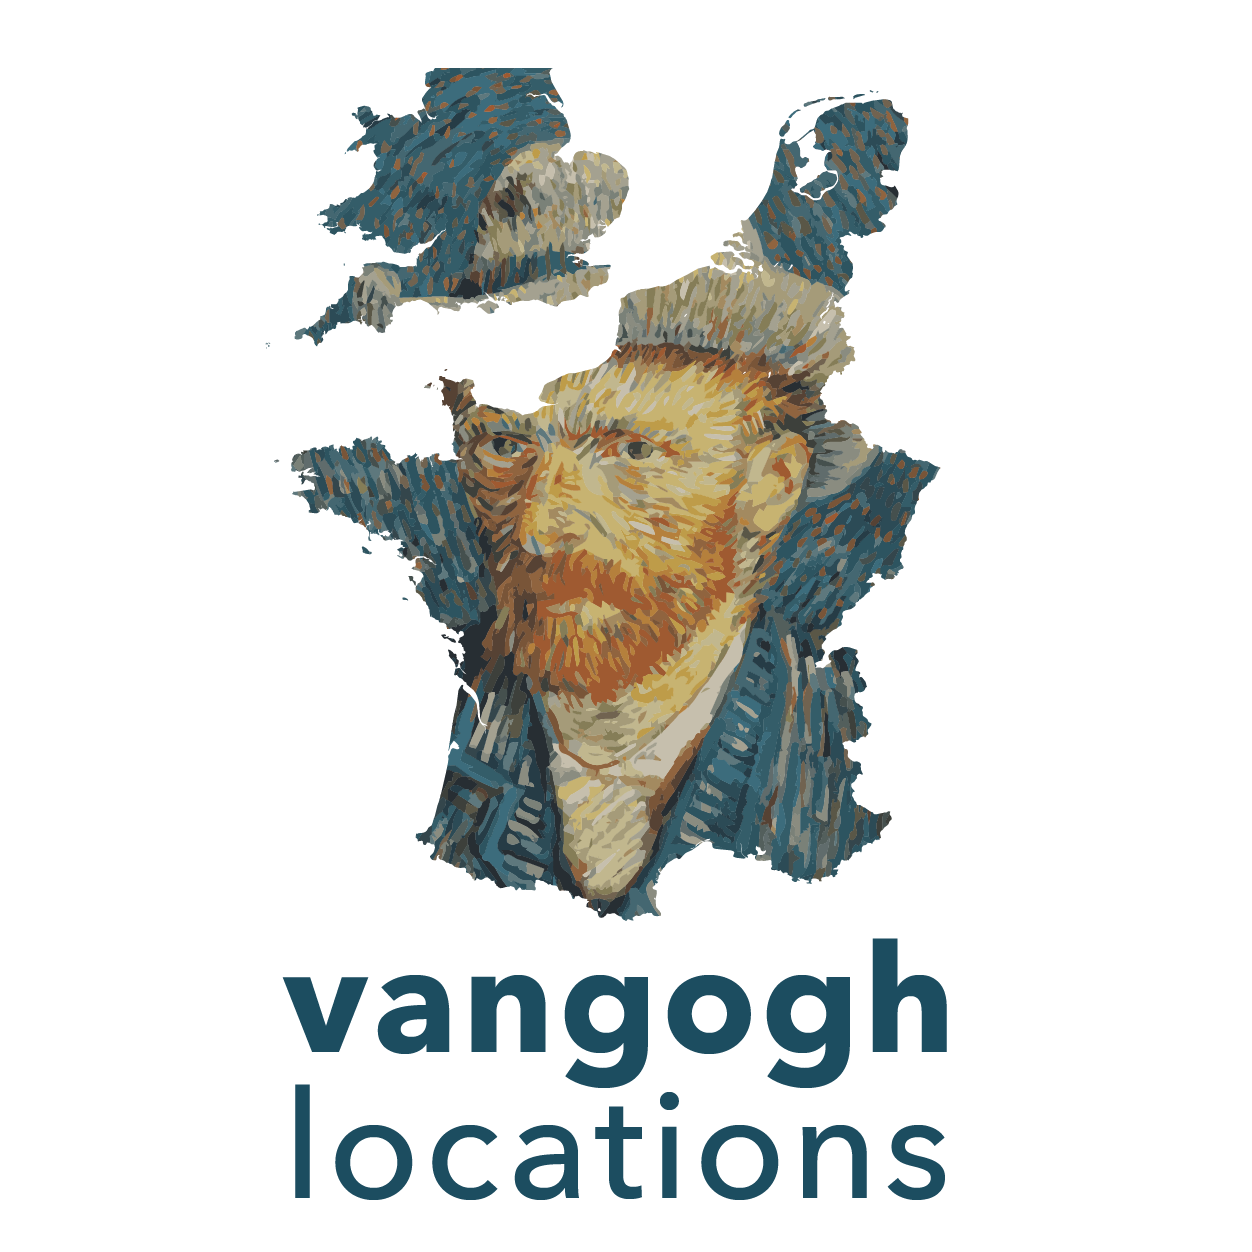 Vangoghlocations.com